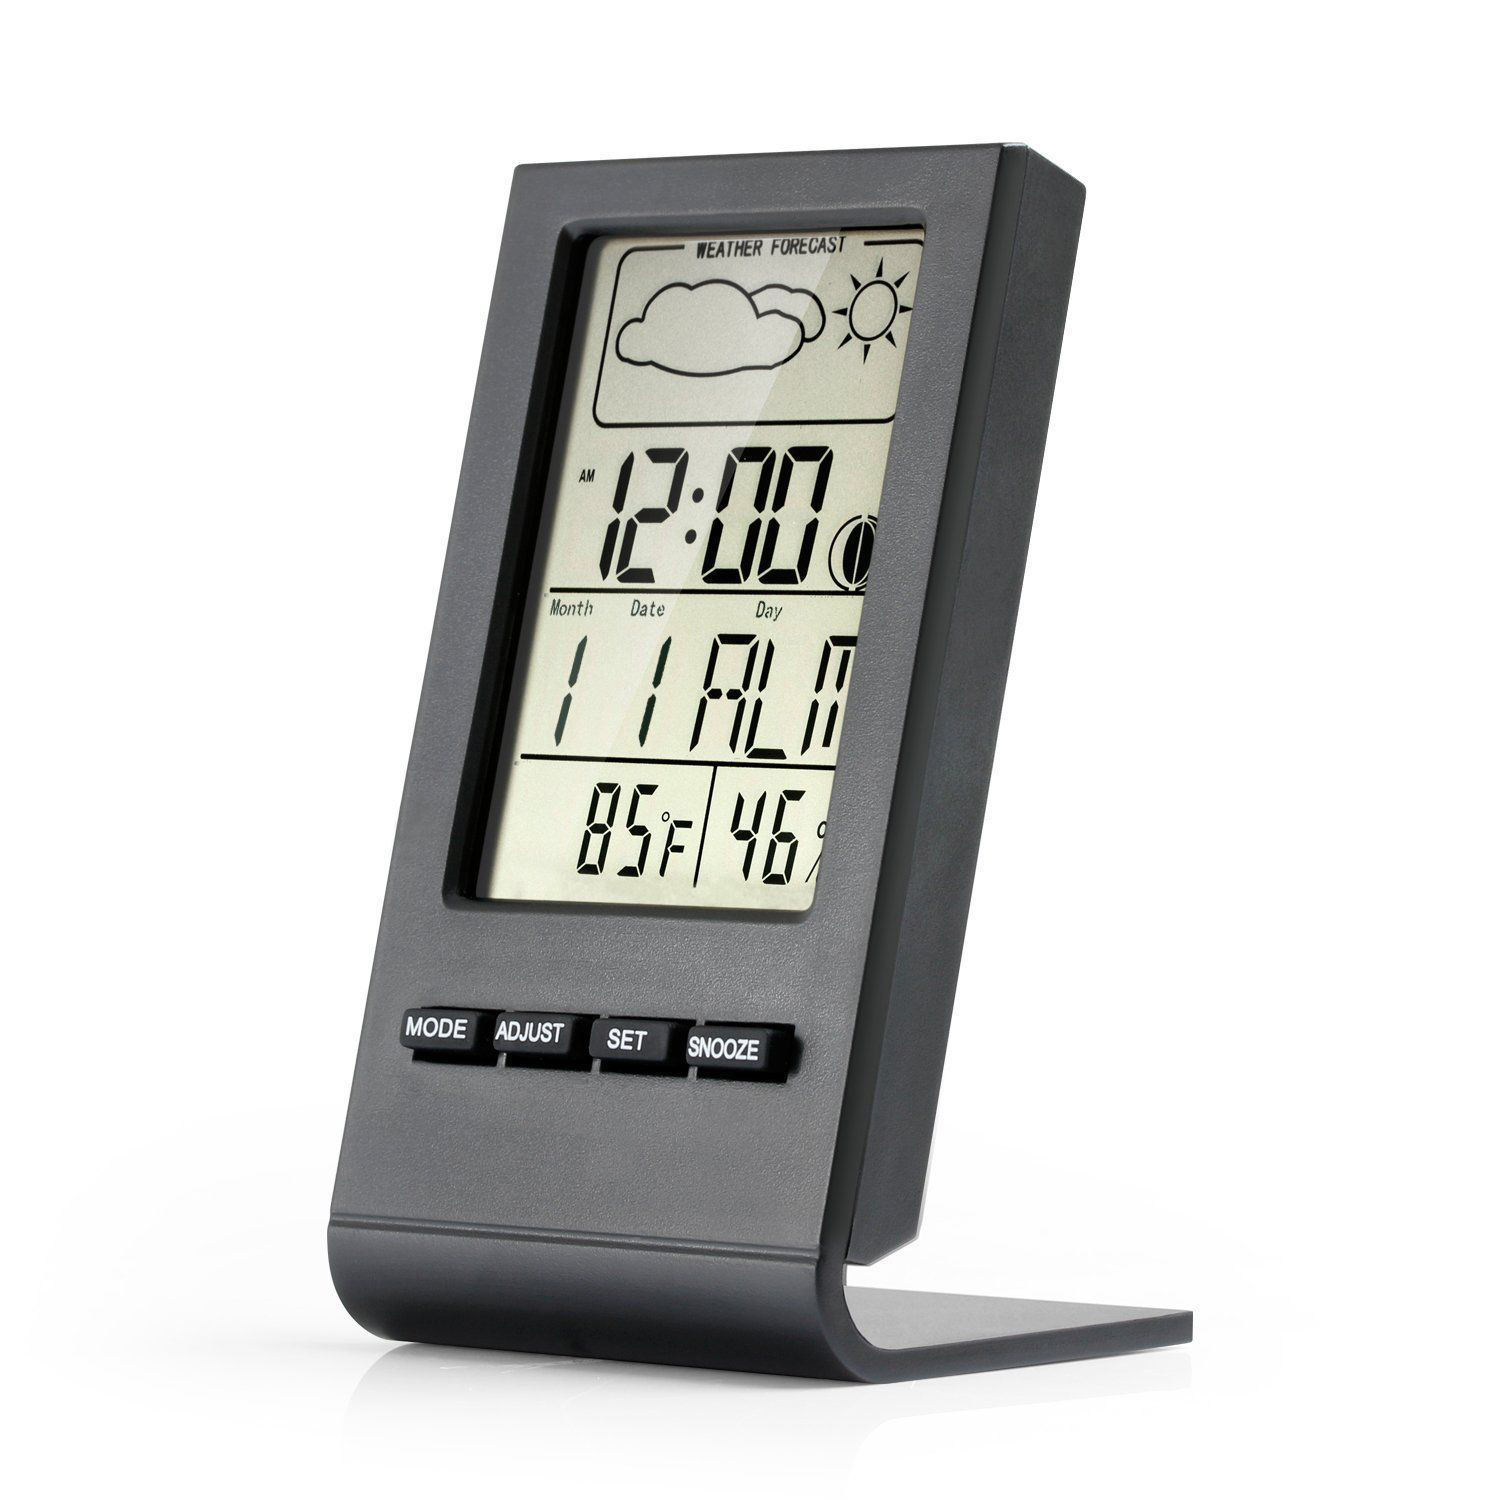 Portable Home Wireless Weather Station / Temperature Humidity Meter